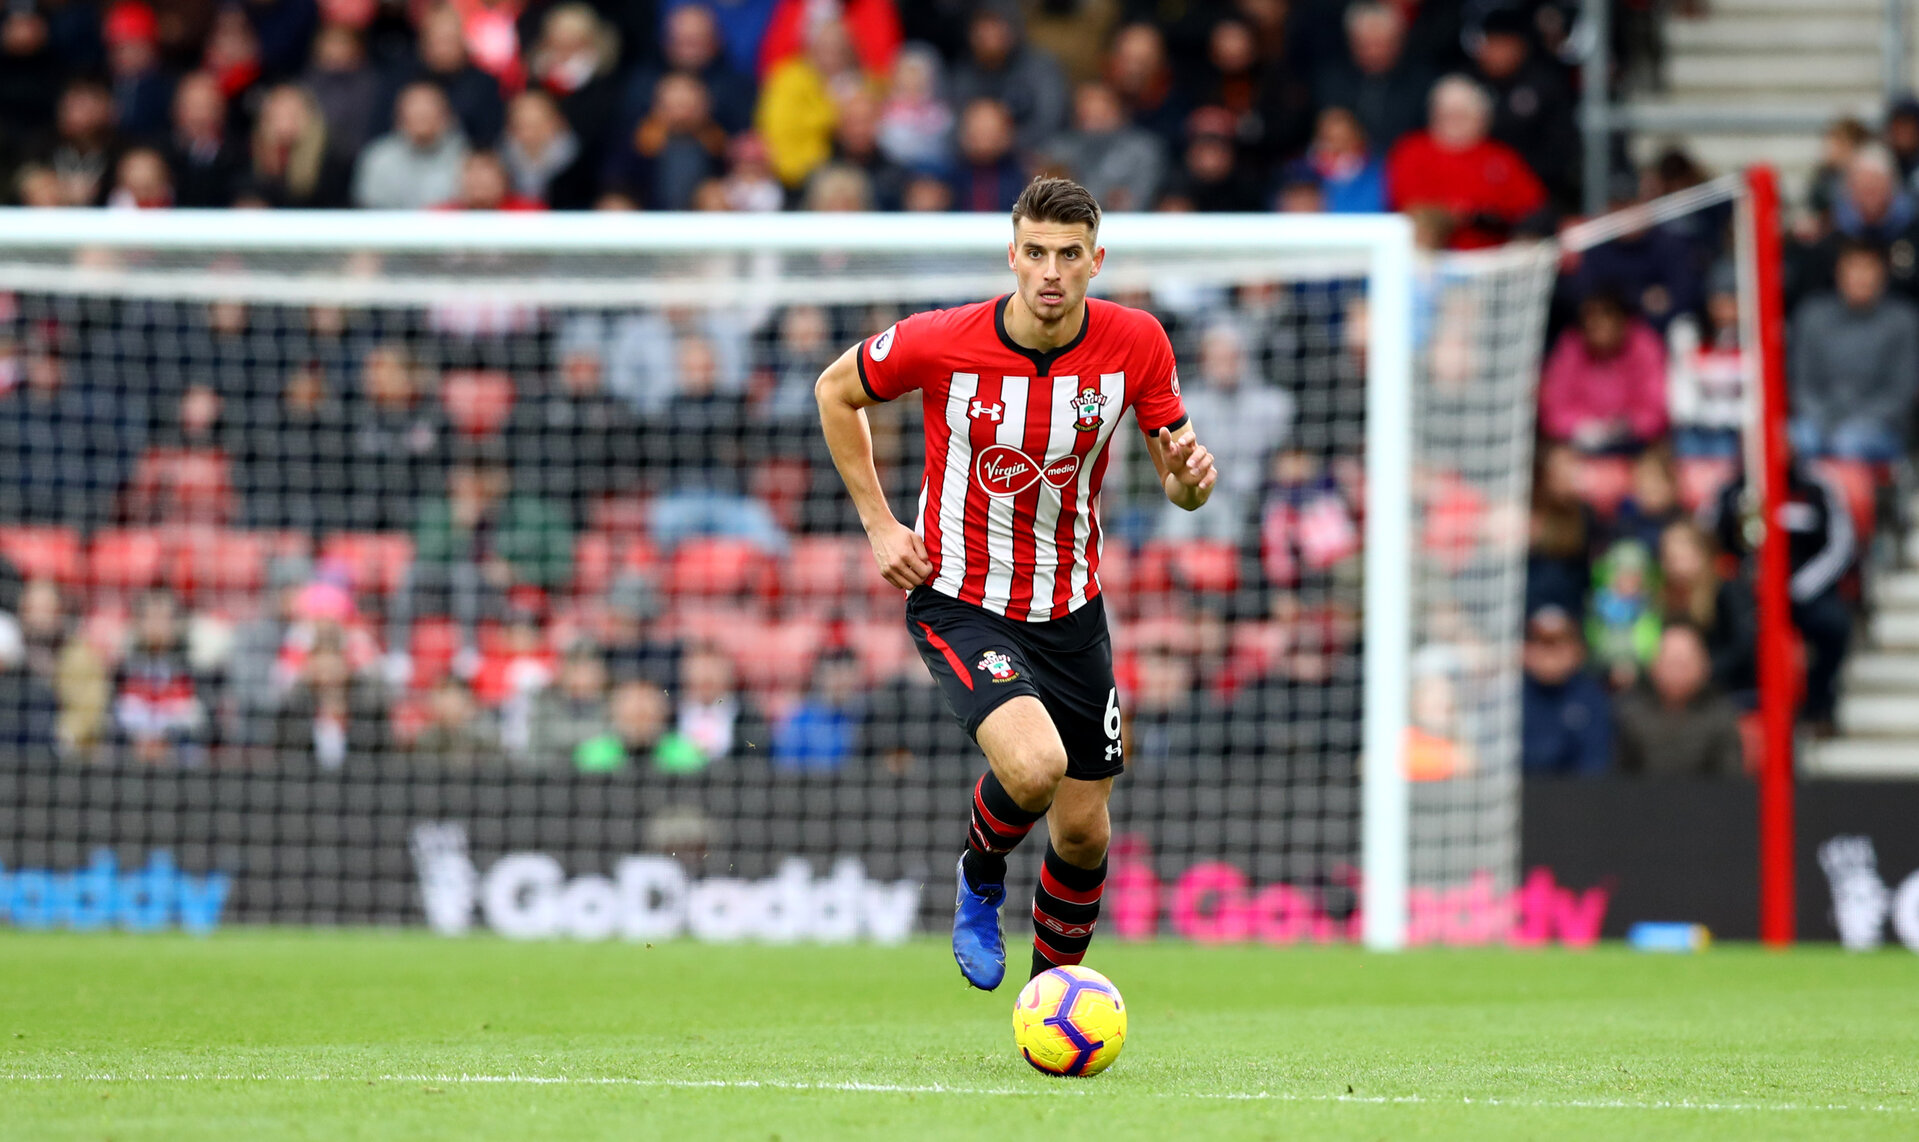 SOUTHAMPTON, ENGLAND - OCTOBER 27: Wesley Hoedt of Southampton during the Premier League match between Southampton FC and Newcastle United at St Mary's Stadium on October 27, 2018 in Southampton, United Kingdom. (Photo by Matt Watson/Southampton FC via Getty Images)